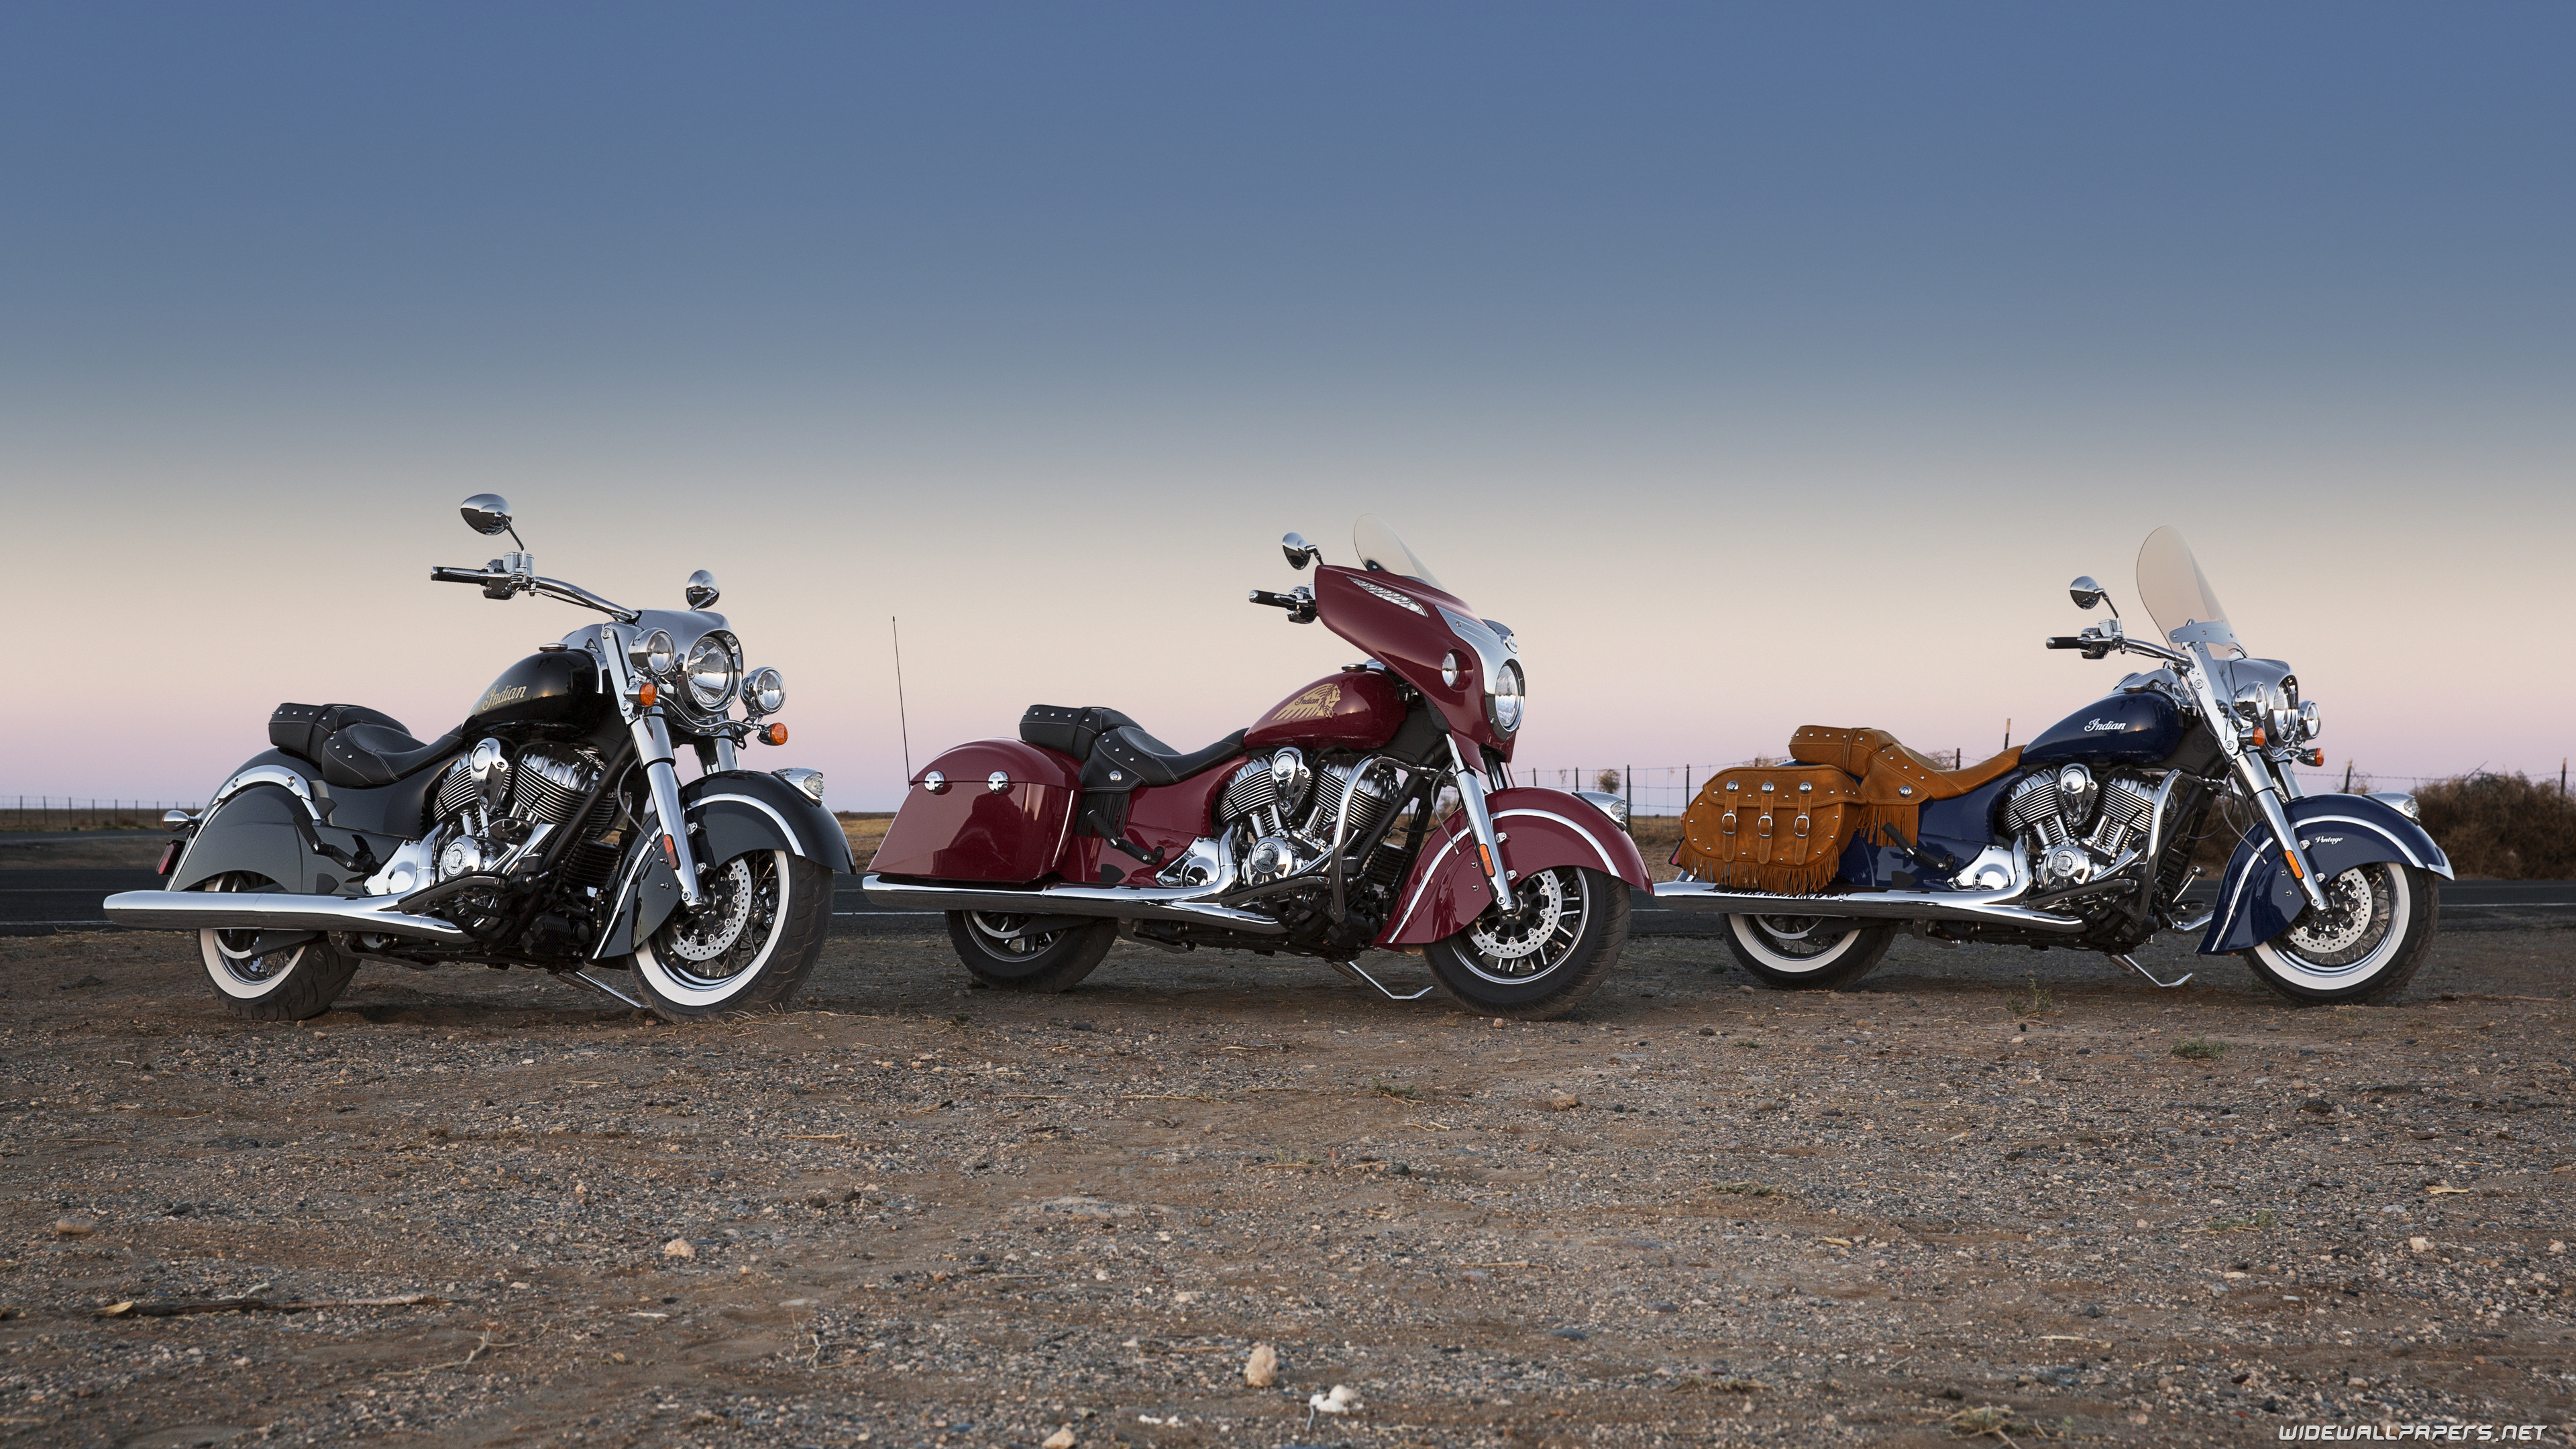 3840x2160 - Indian Motorcycle Desktop 30